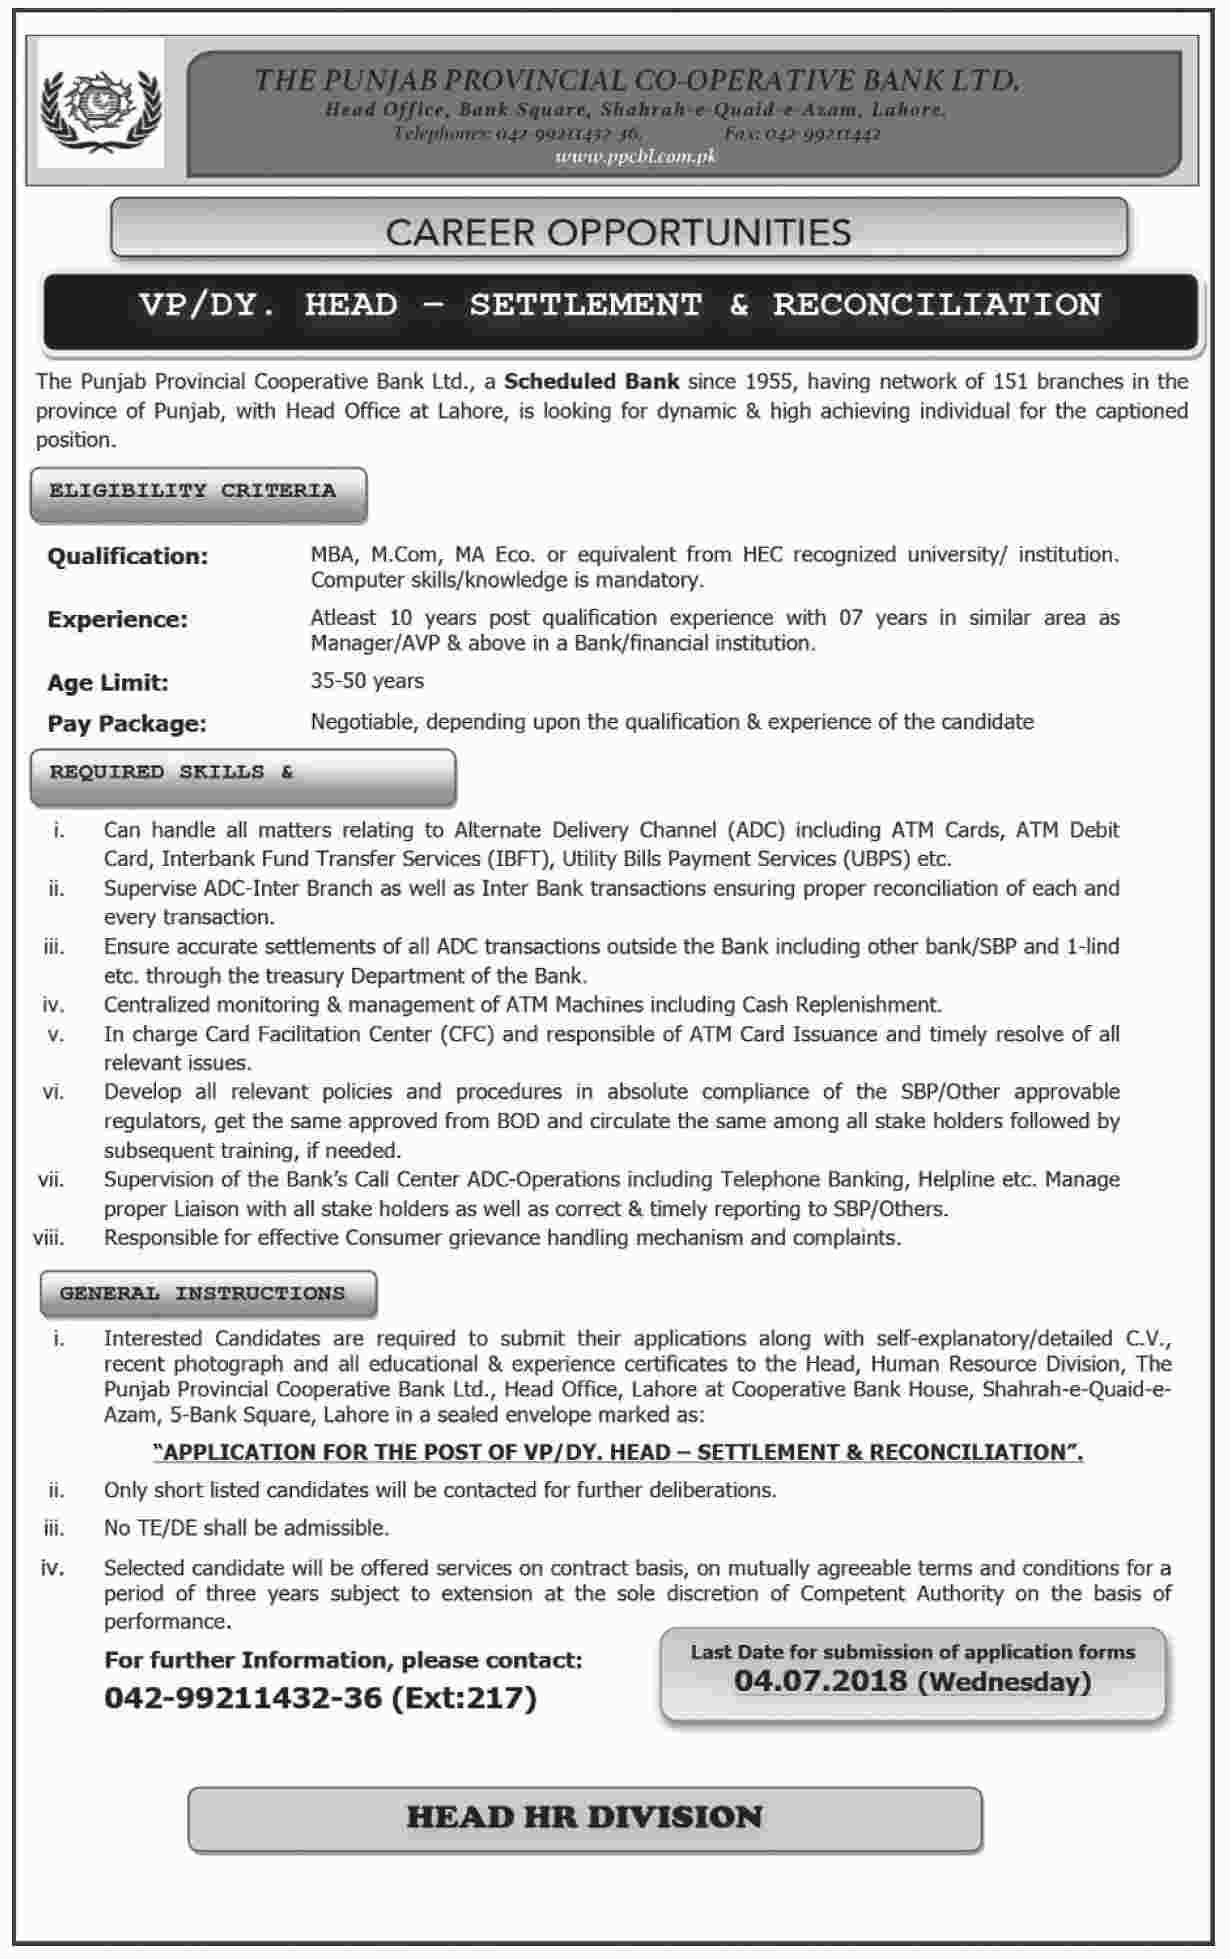 Jobs in The Punjab Provincial Cooperative Bank Limited 10 June 2018